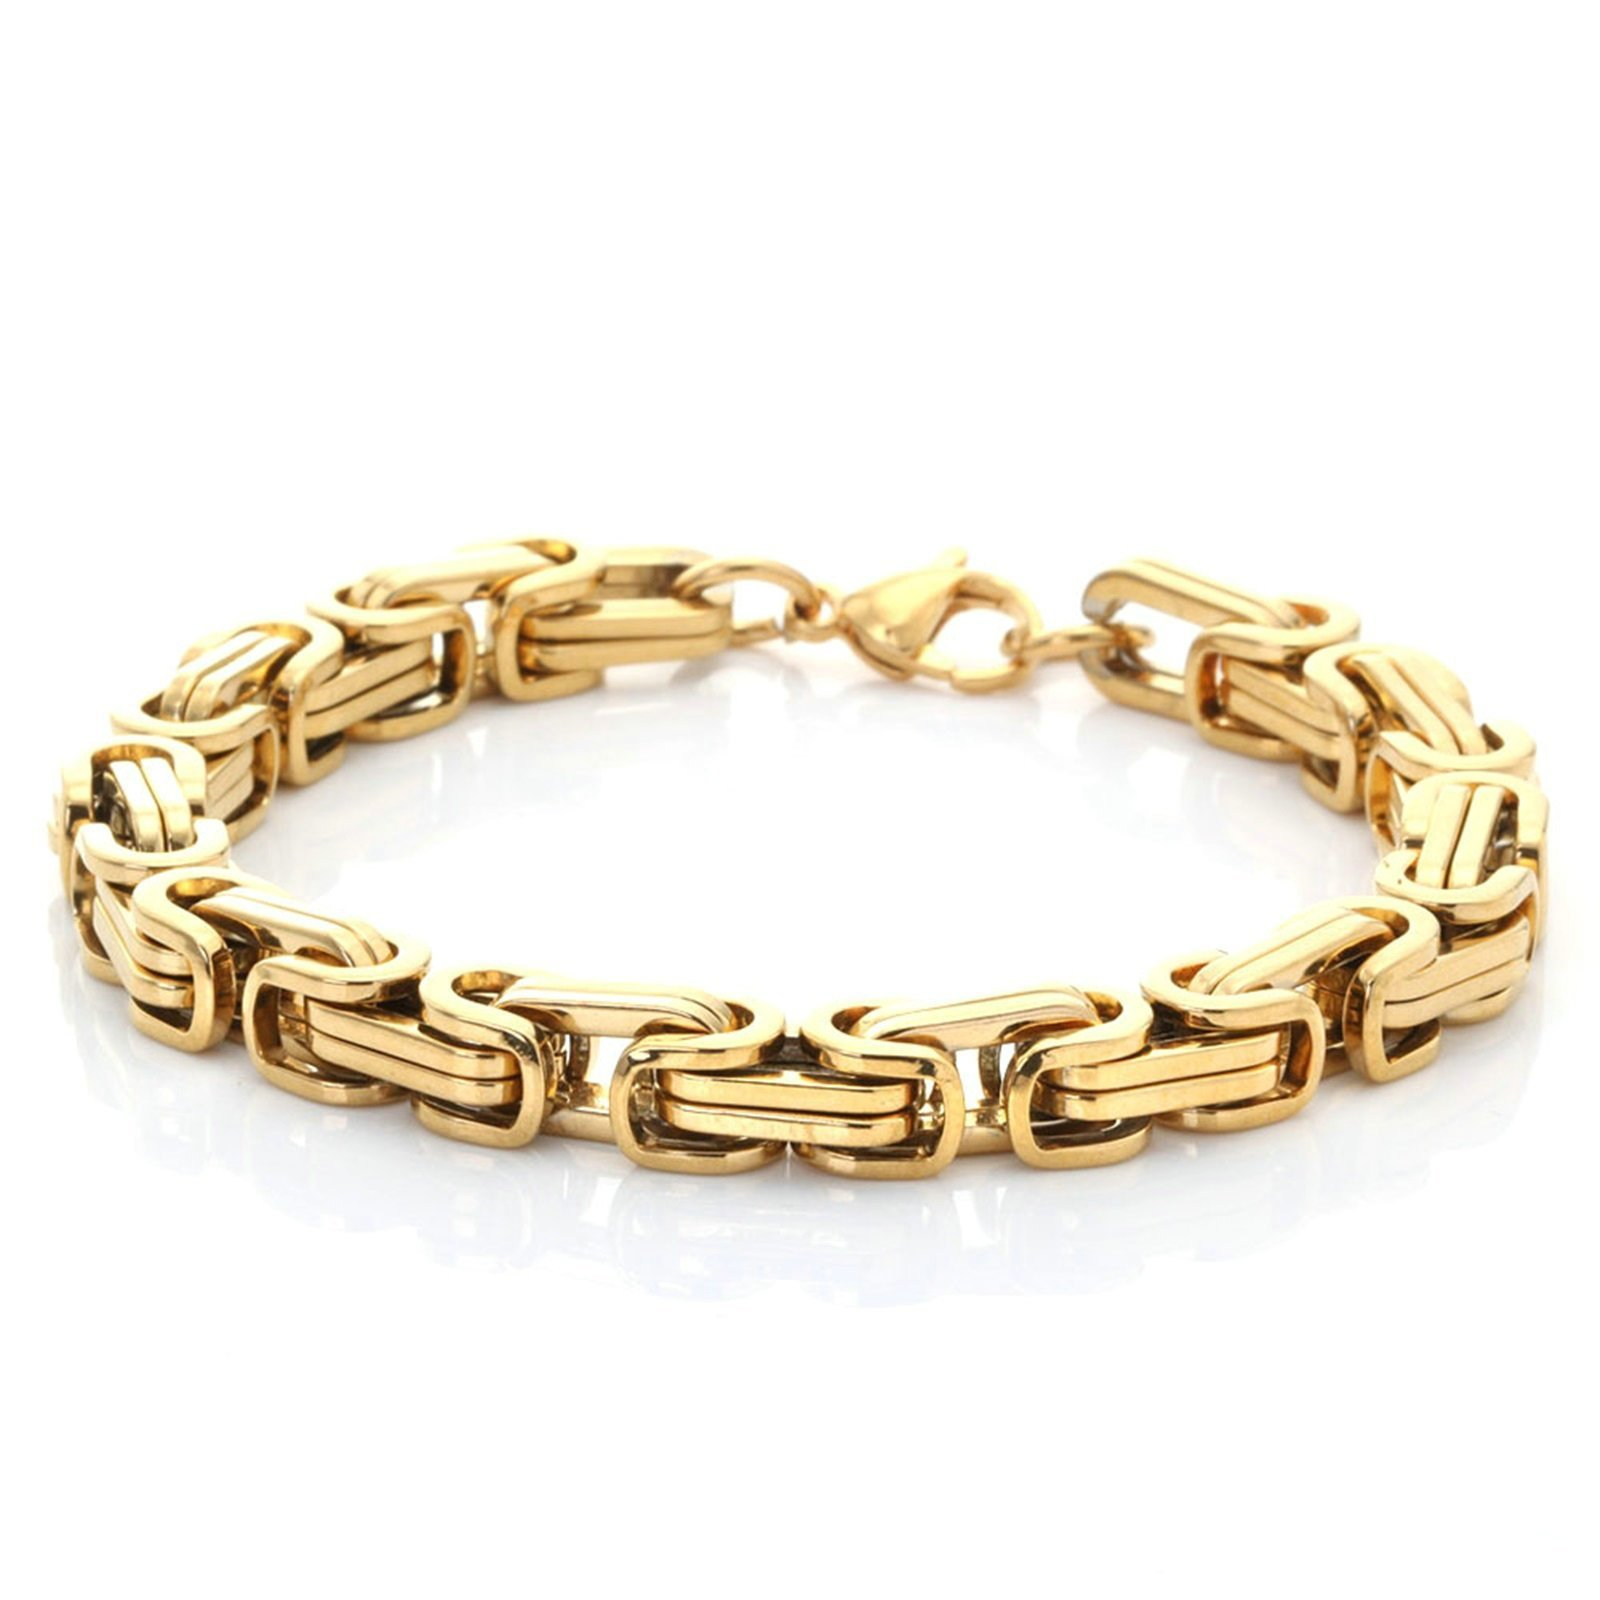 Aooaz Jewelry Titanium Steel Bracelet for Men Byzantine Chain 19CM Cuff Bracelet Gold 8MM Bracelet